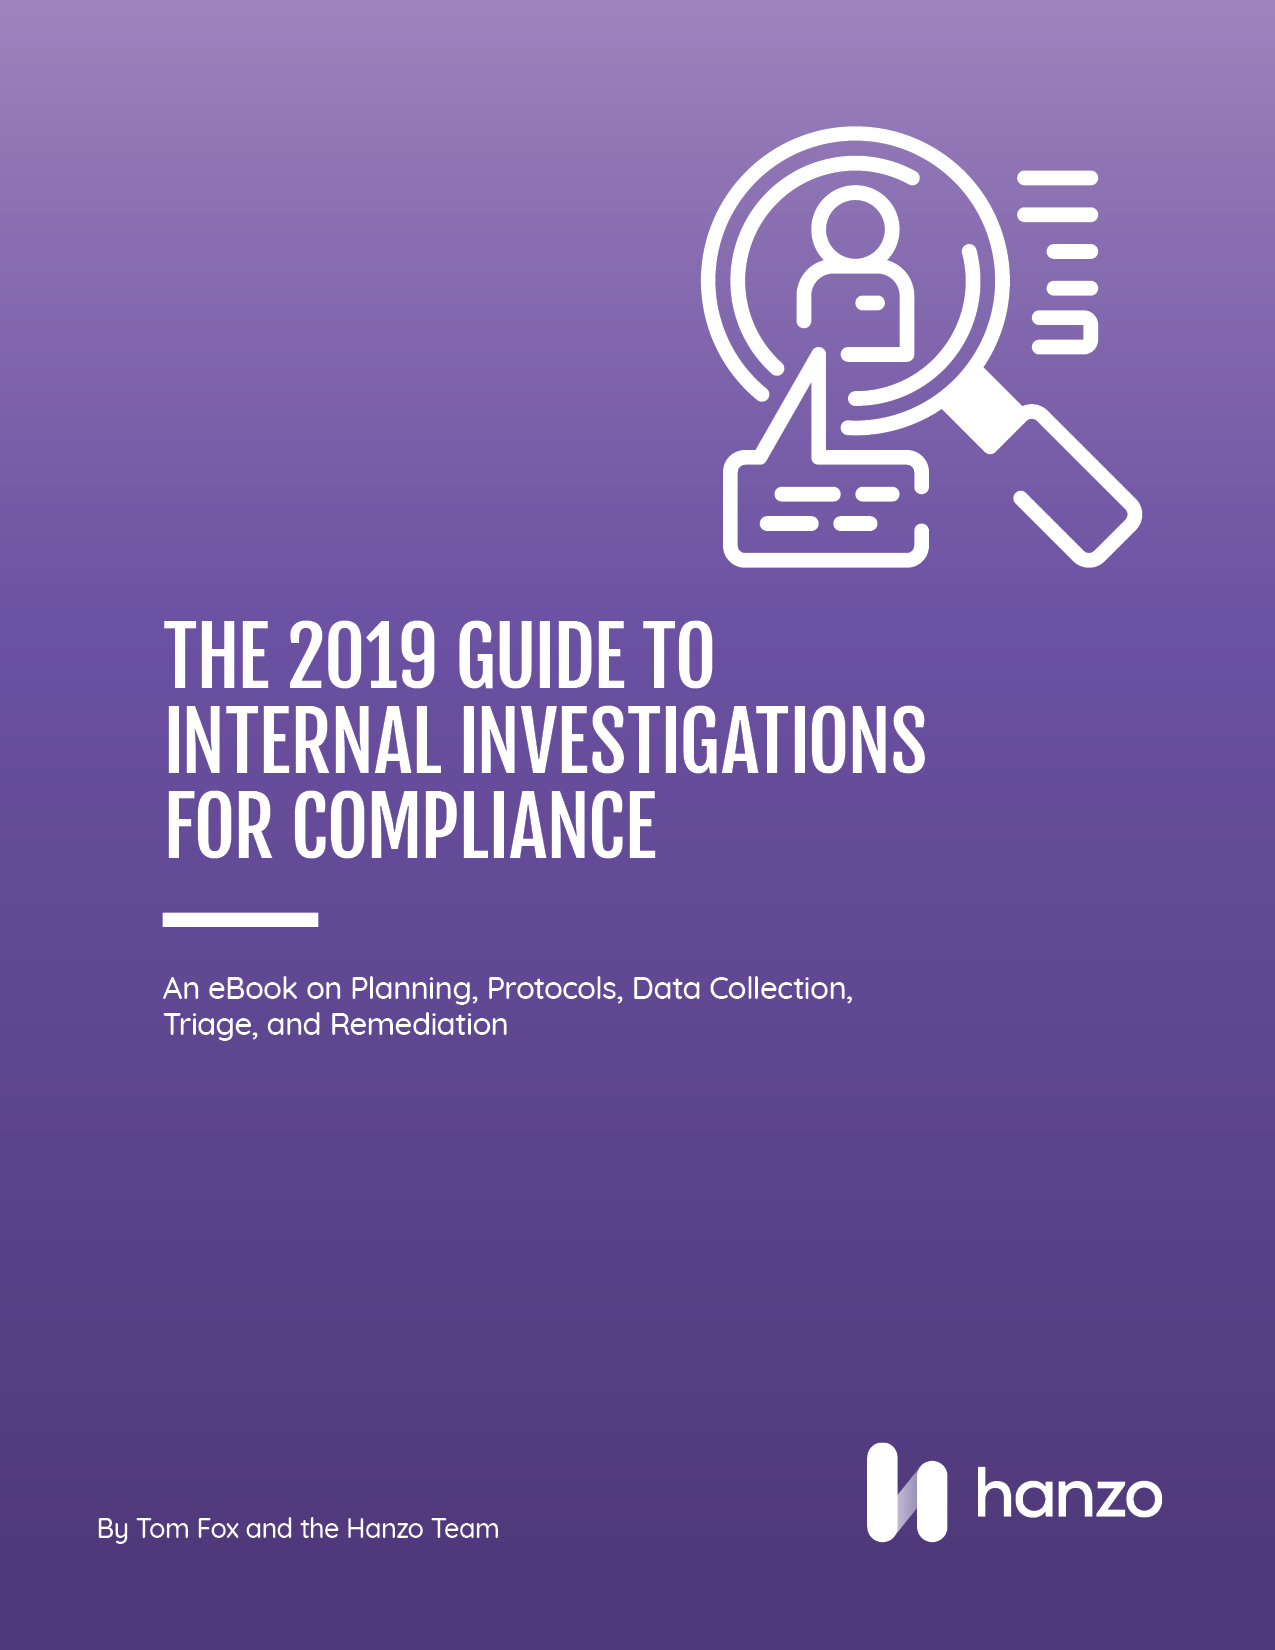 Hanzos Guide to Internal Investigations for Compliance